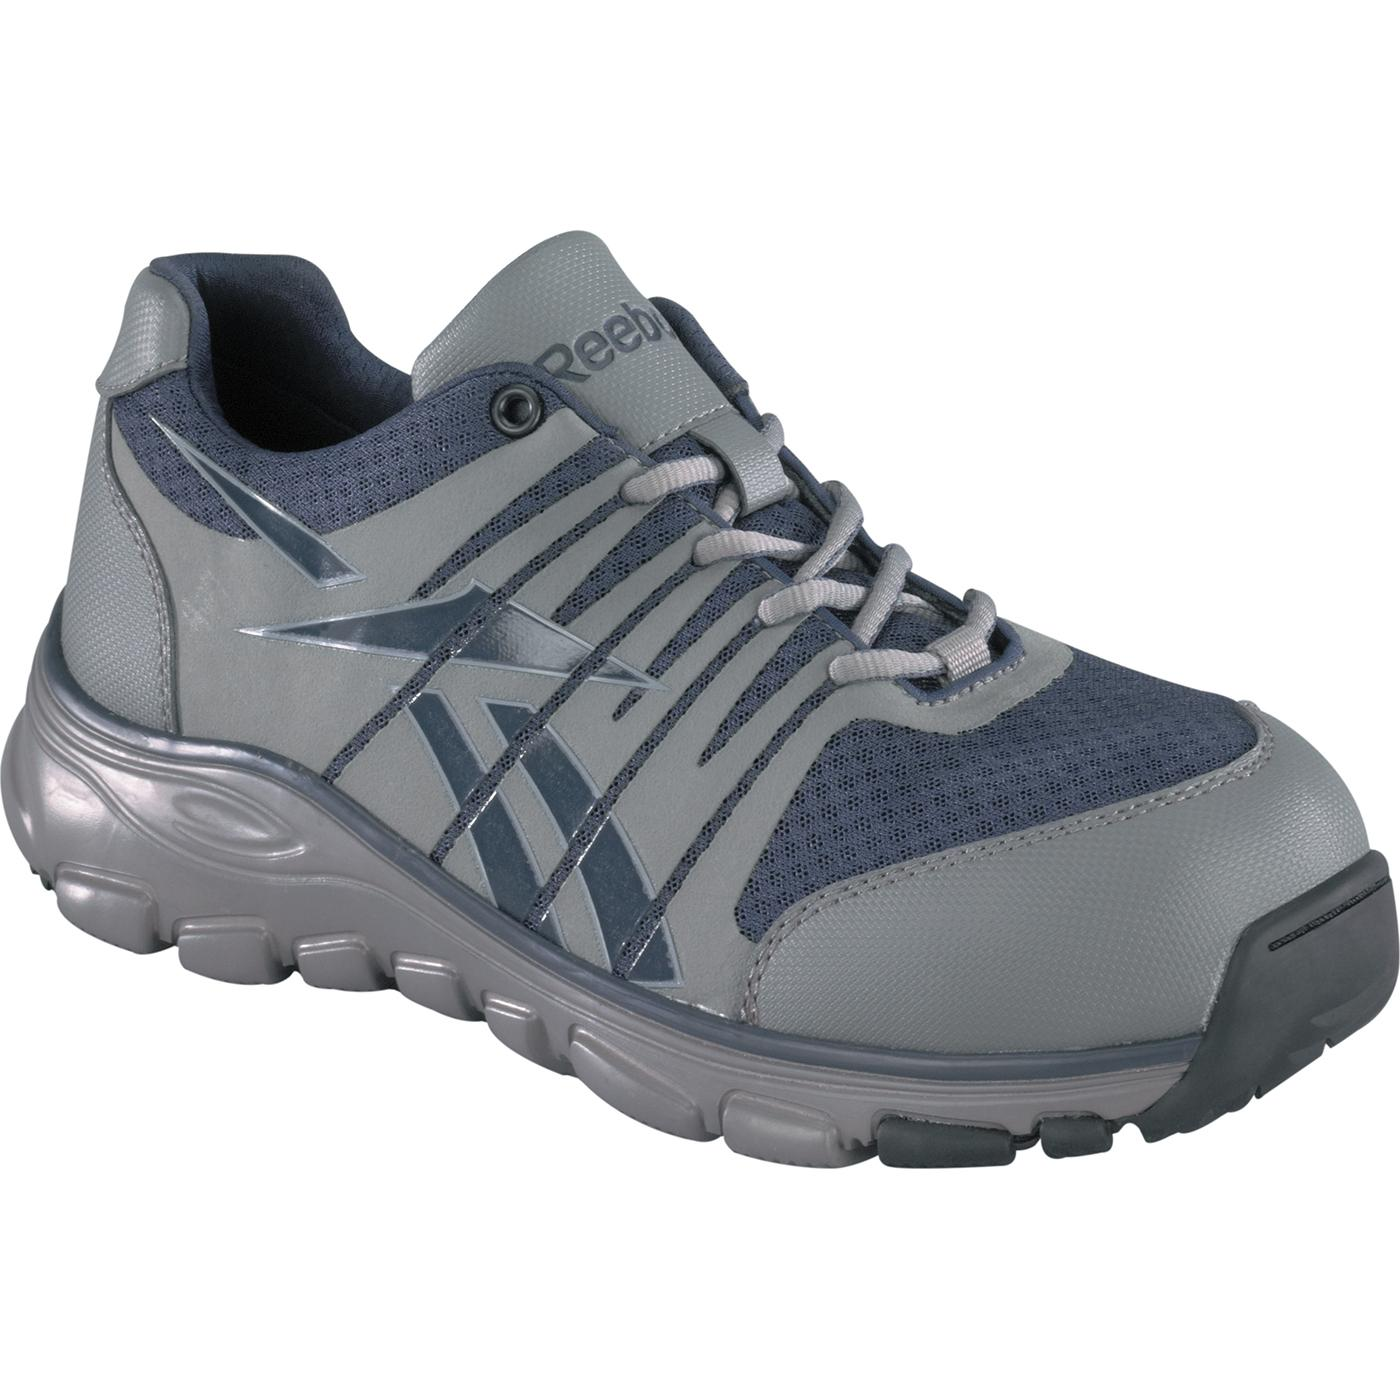 reebok arion composite toe athletic work shoe rb4502